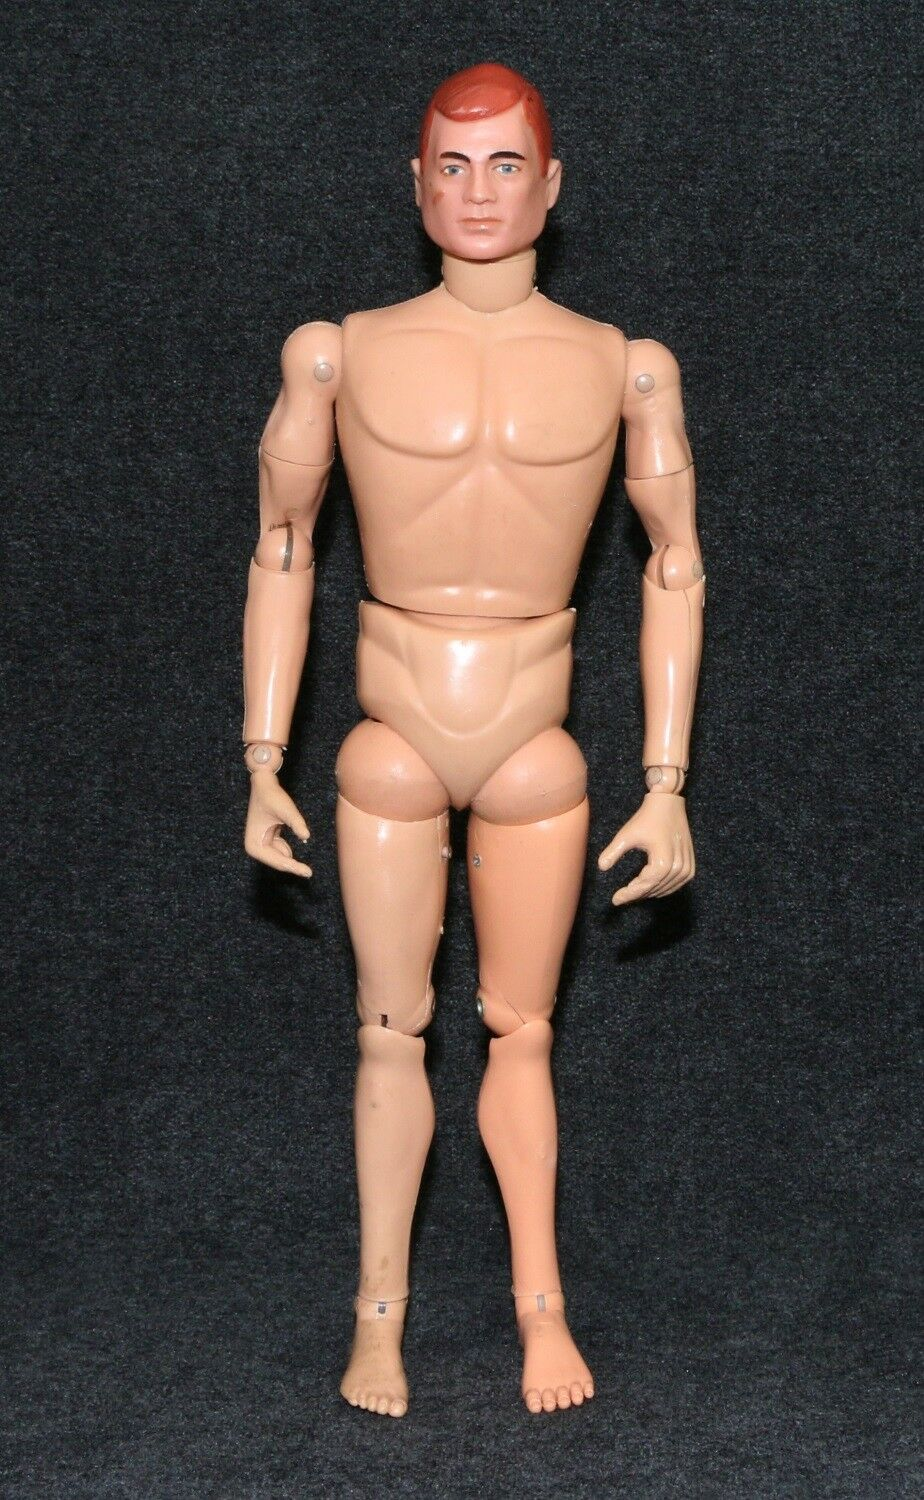 GI Joe 1964 Sessanta Nude cifra rossohead TM Single Slot Original High Grade